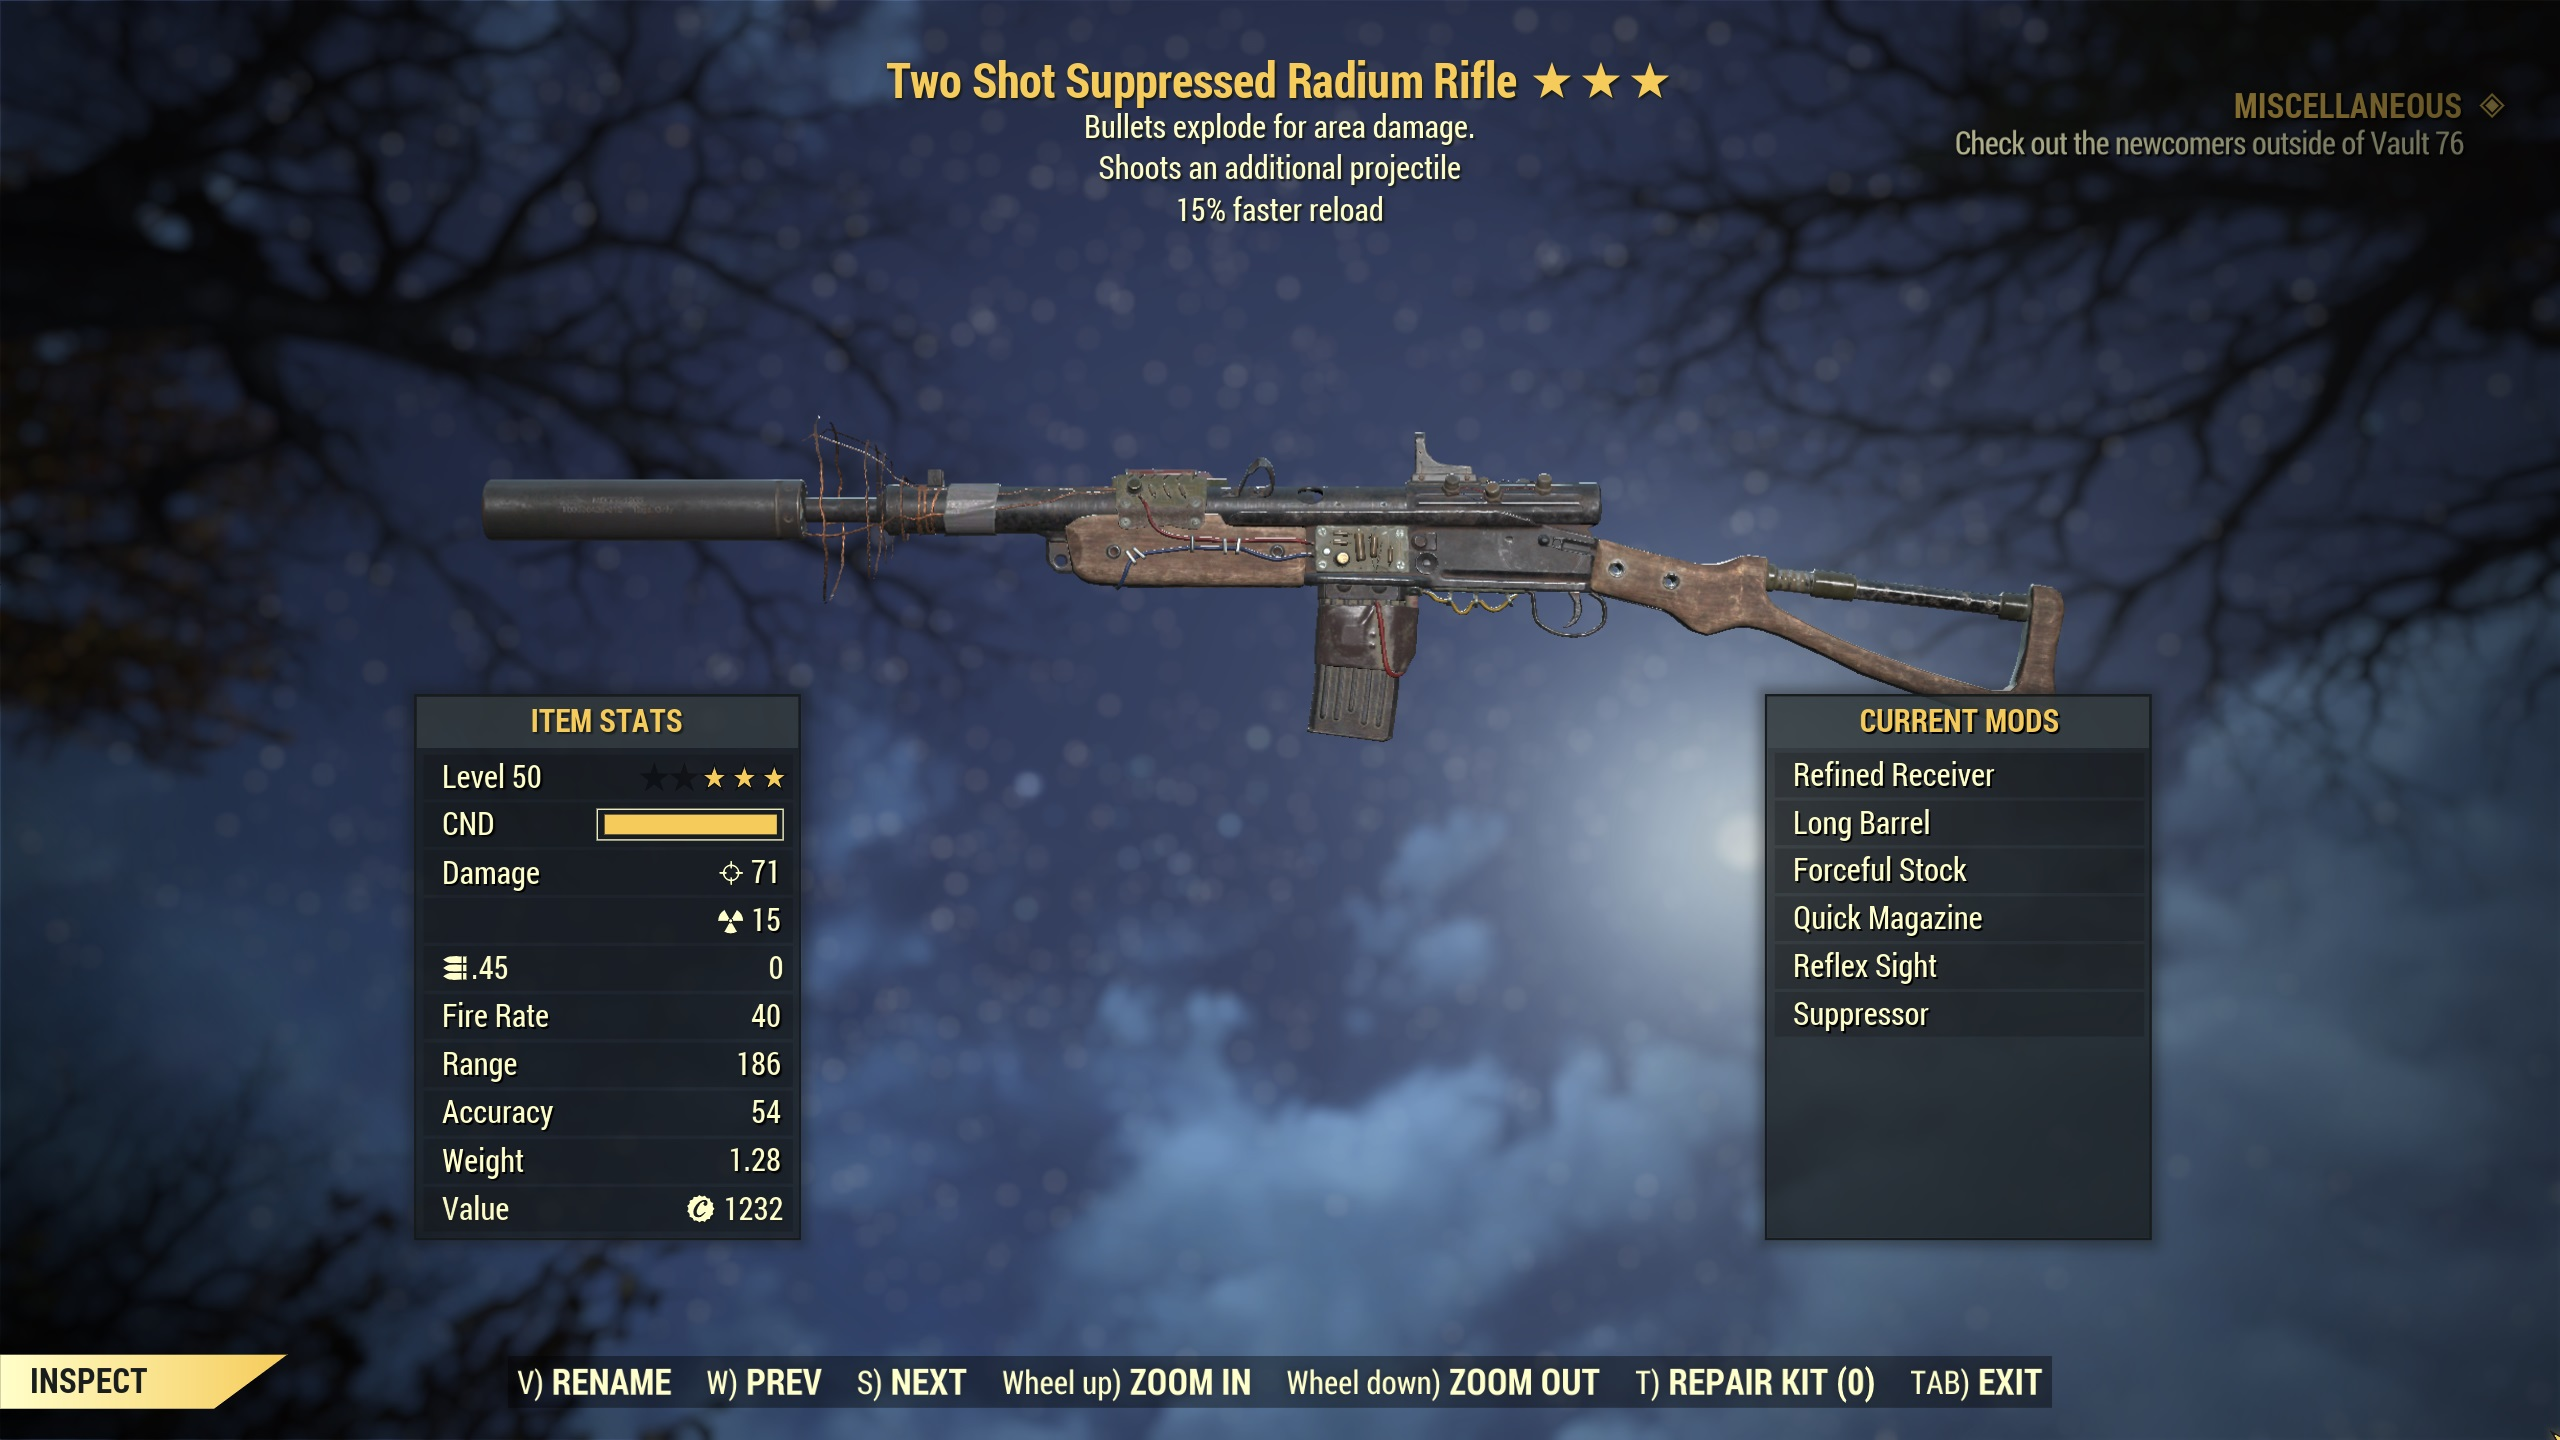 ★★★ Two Shot Explosive Radium Rifle[15% Faster Reload][Radiation Damage] | FAST DELIVERY |